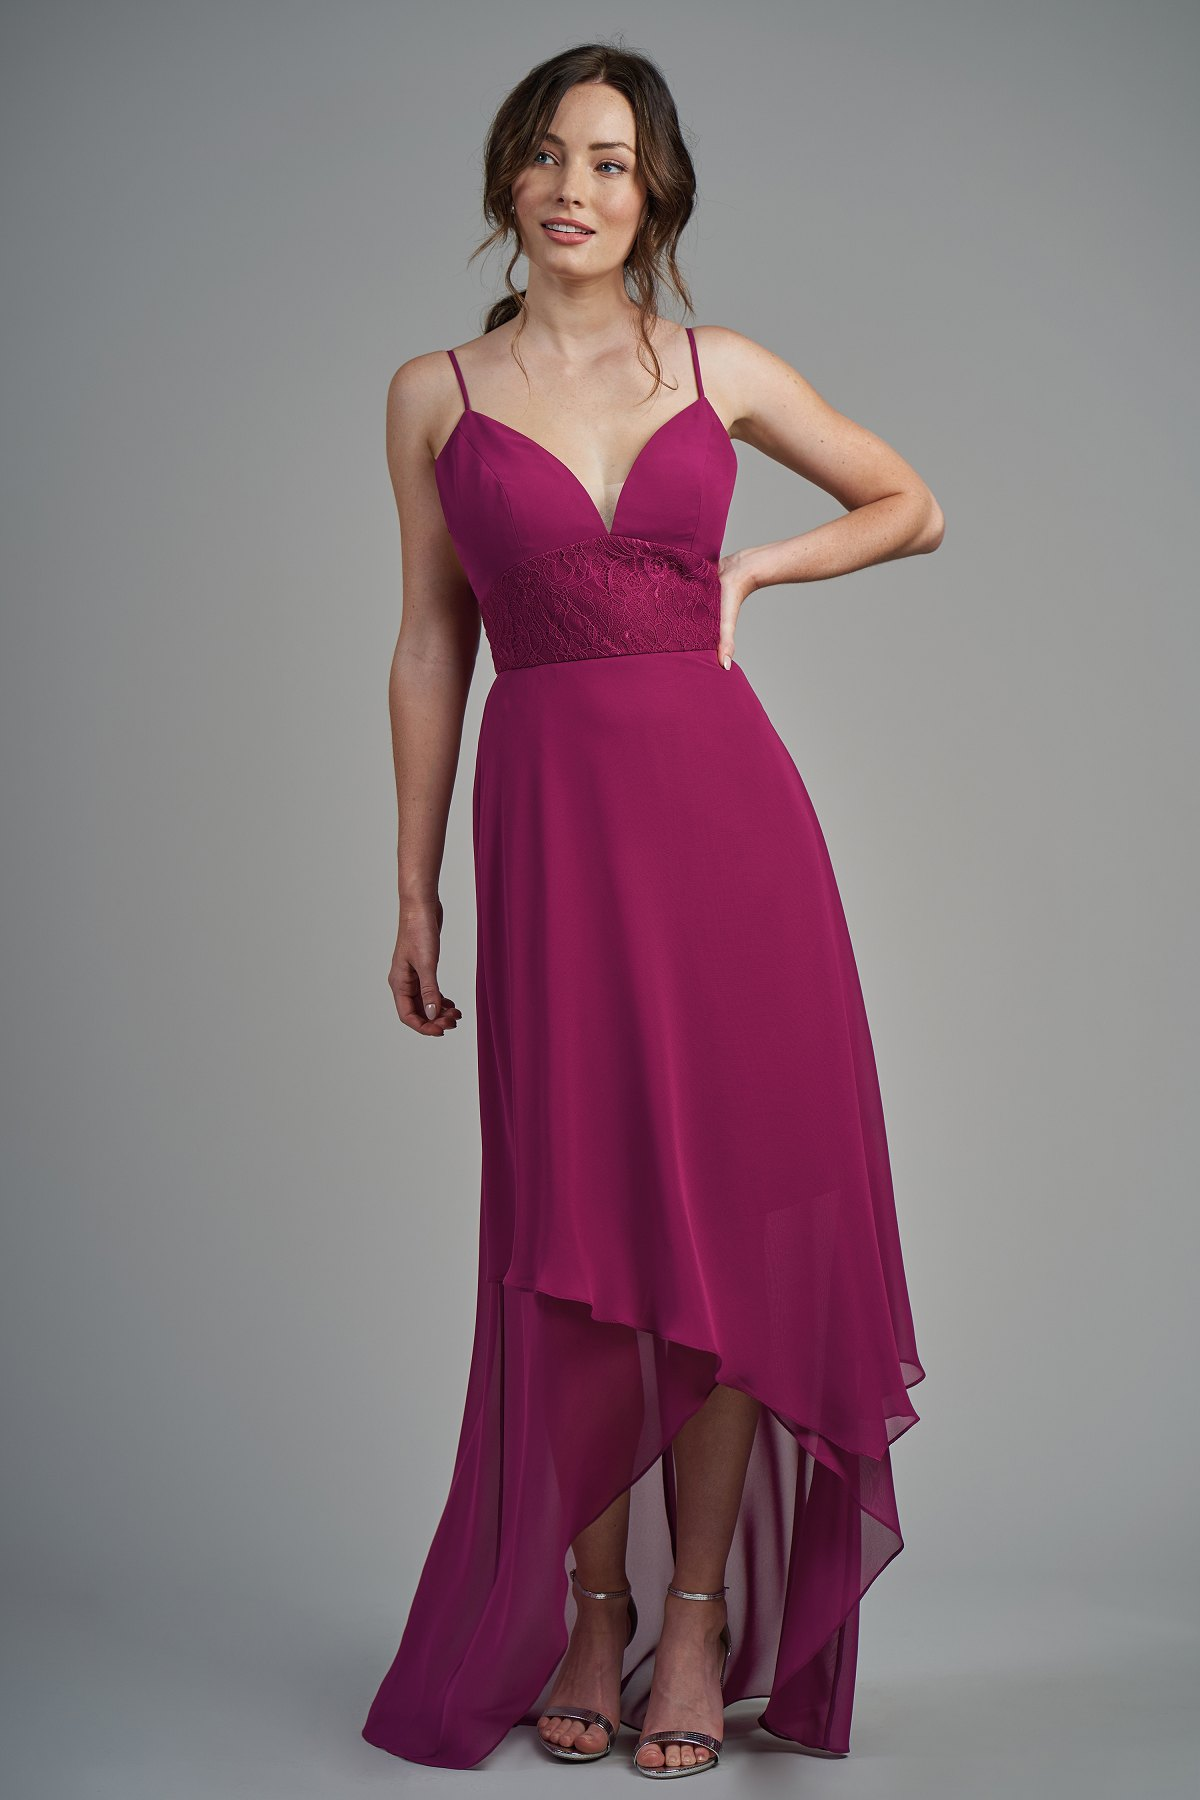 96463e12846 B213008 Poly Chiffon & Lace High-Low Bridesmaid Dress with V-Neckline